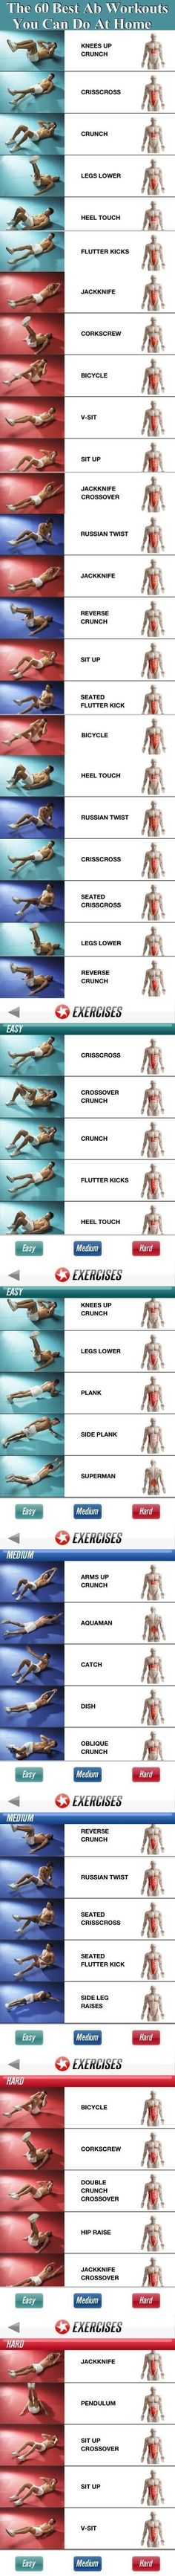 men's abs workout charts http://weightlosssucesss.pw/dont-be-duped-3-diet-foods-guaranteed-to-sabotage-your-health/